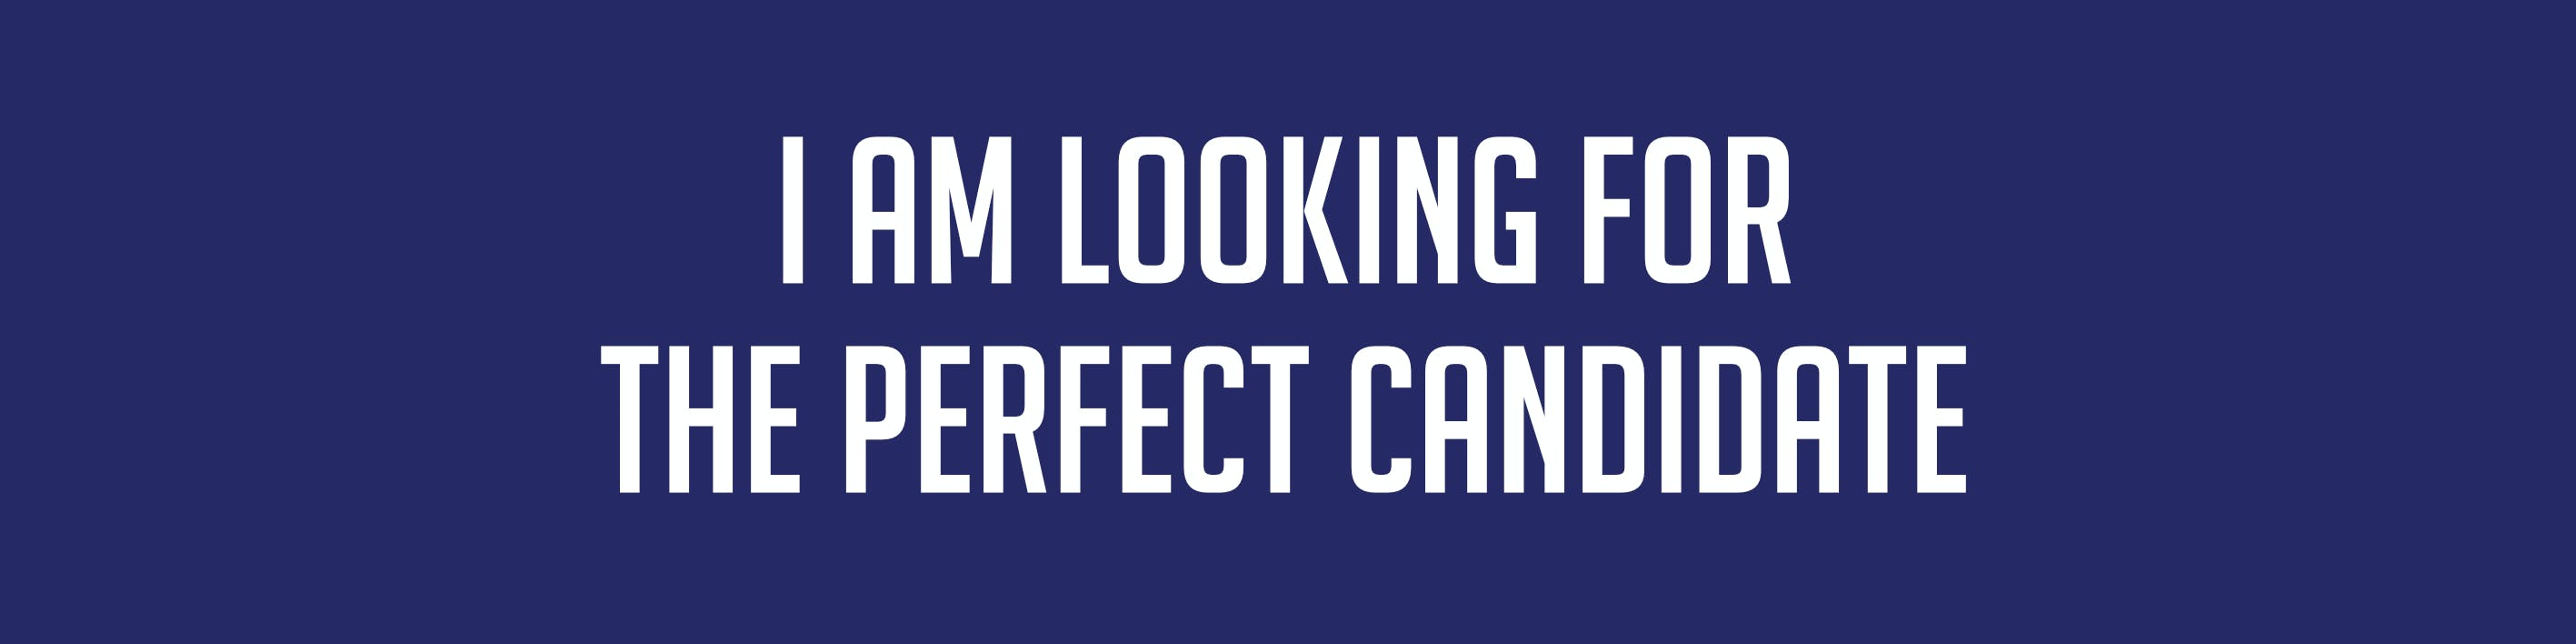 the-perfect-candidate.jpg?mtime=20190710134608#asset:652406